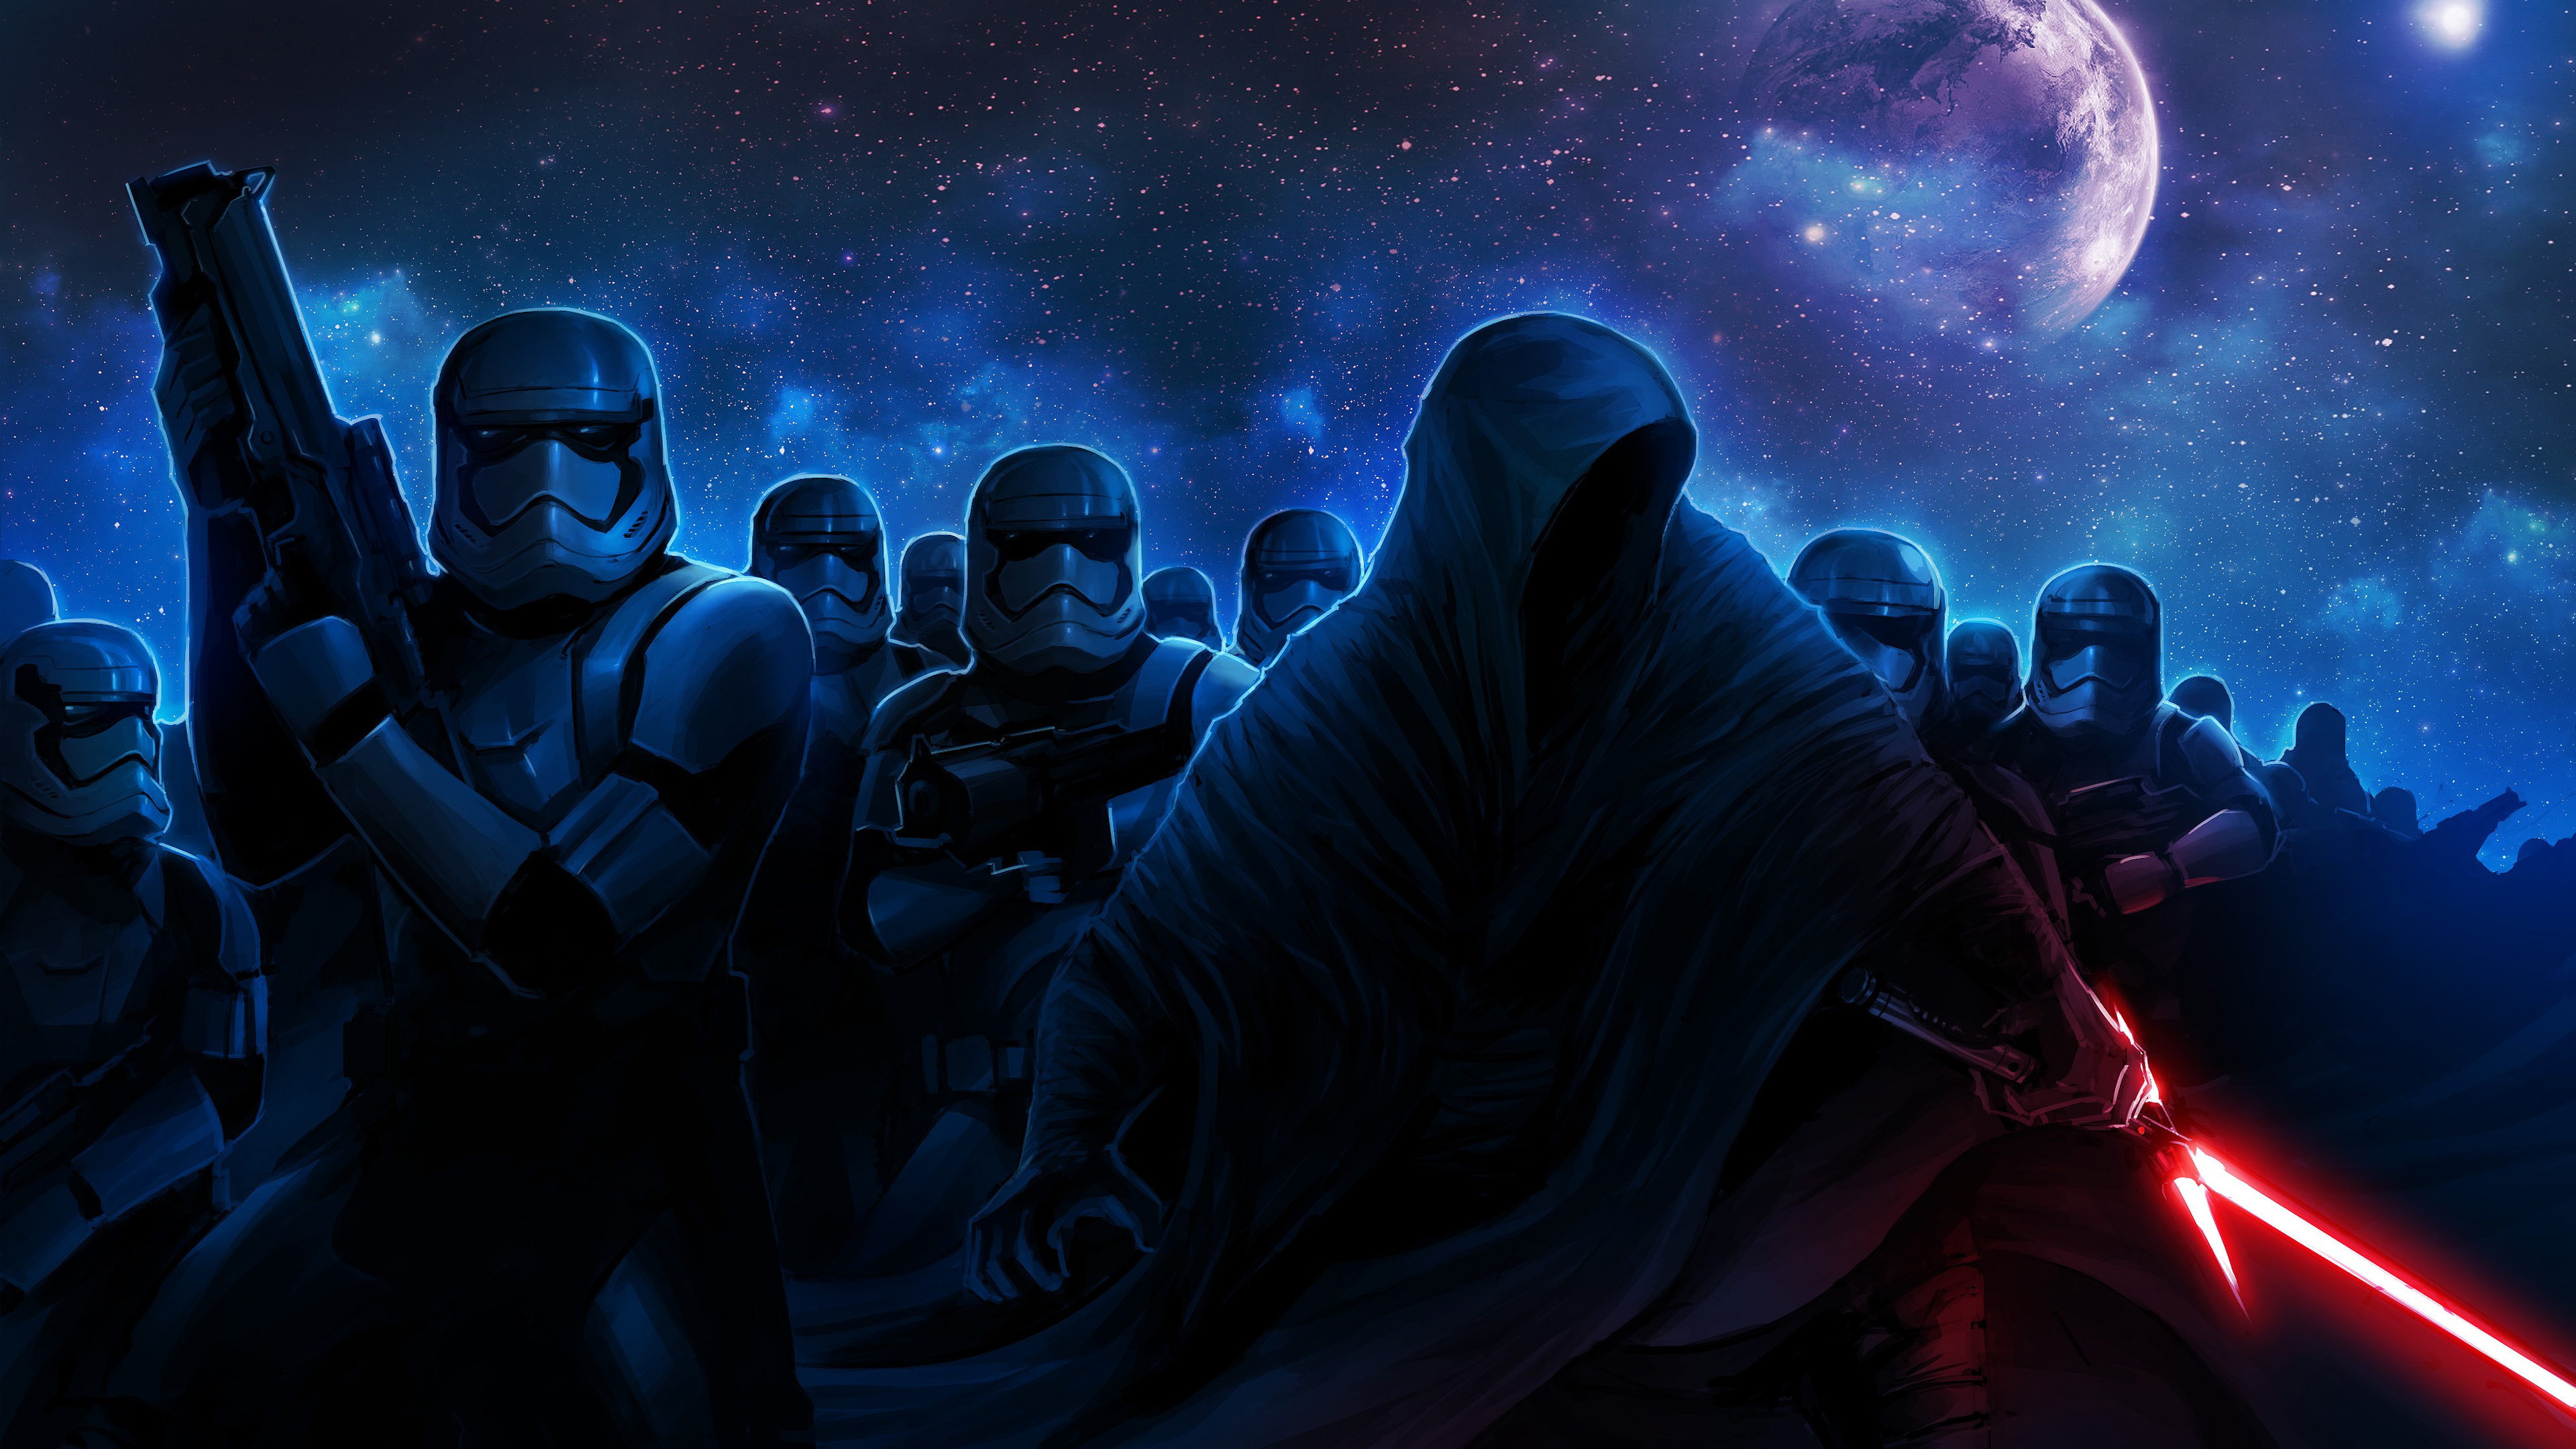 stormtroopers darth wallpapers 1080p 3840x2160